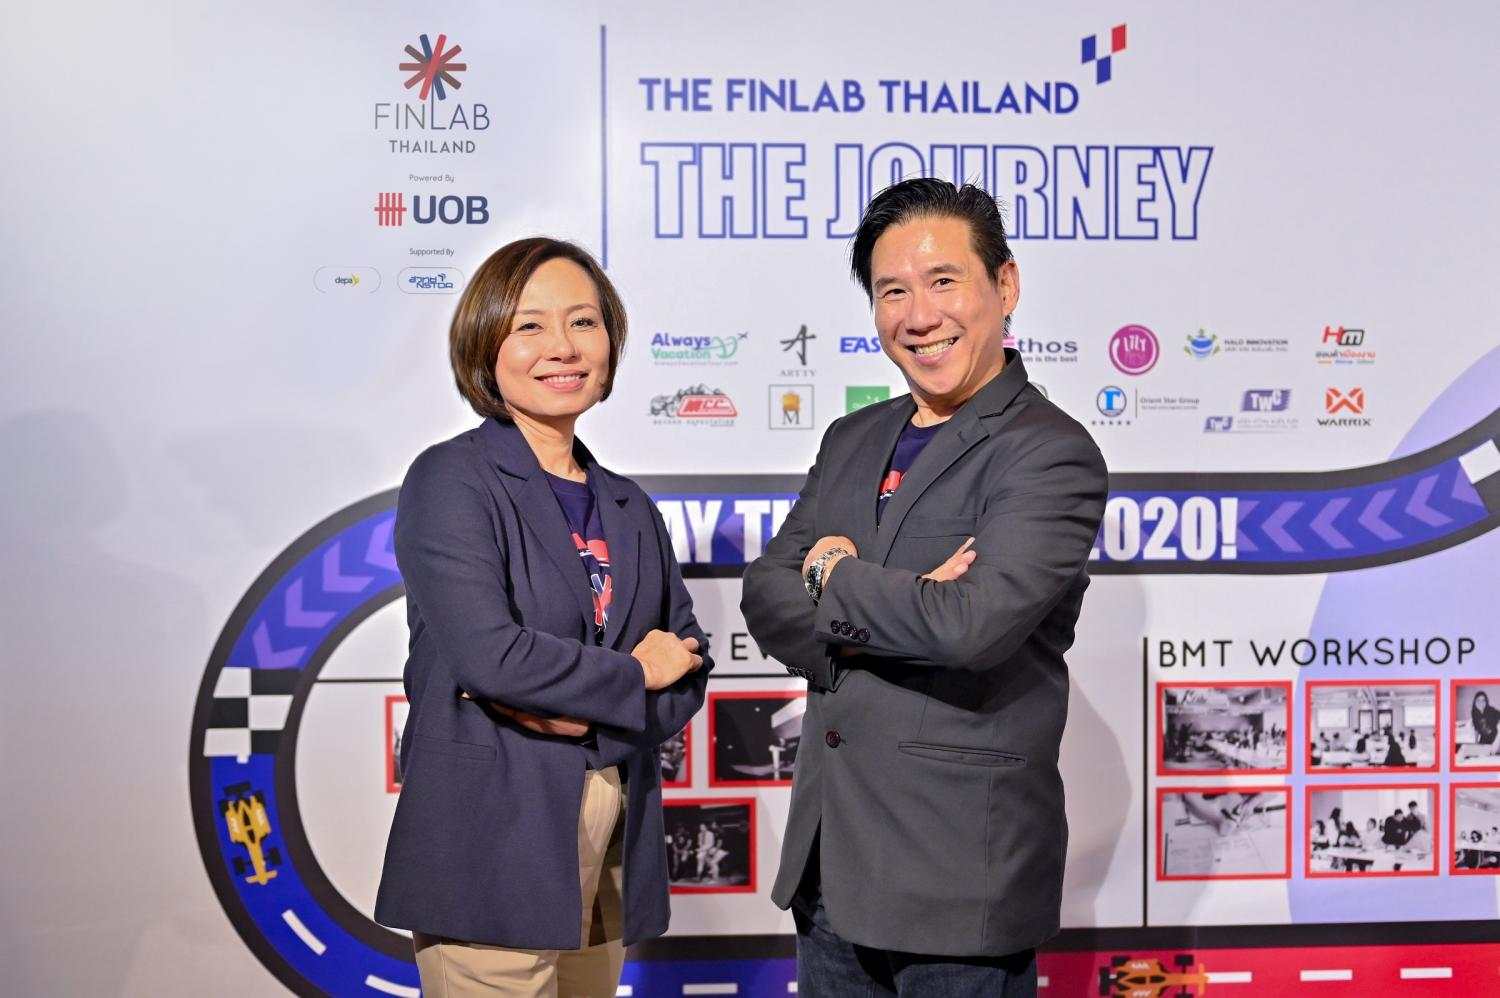 Felix Tan, Co-Head, The FinLab (right), and Piyaporn Ratanaprasartporn, executive director and country head of channels and digitalisation for UOB (Thai), promote a digital scheme for SMEs.